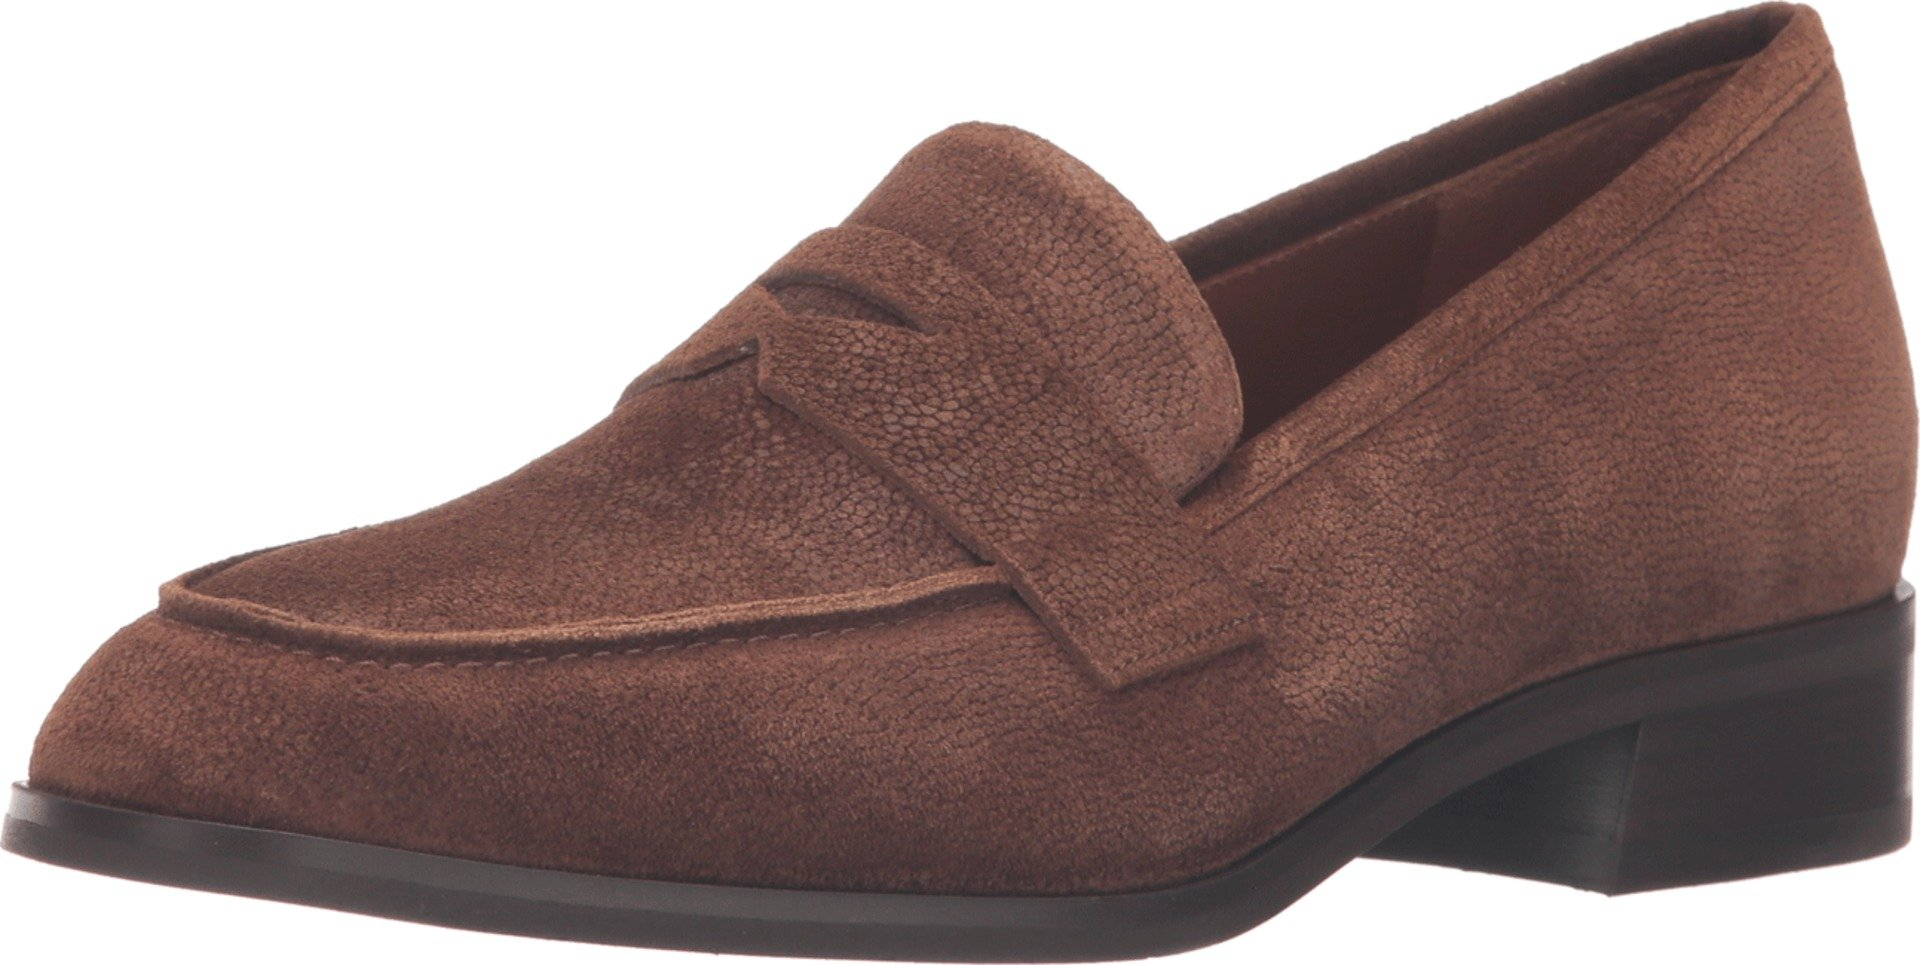 Aquatalia Women's Sharon Chestnut Pebbled Suede 8 B US by Aquatalia by Marvin K.